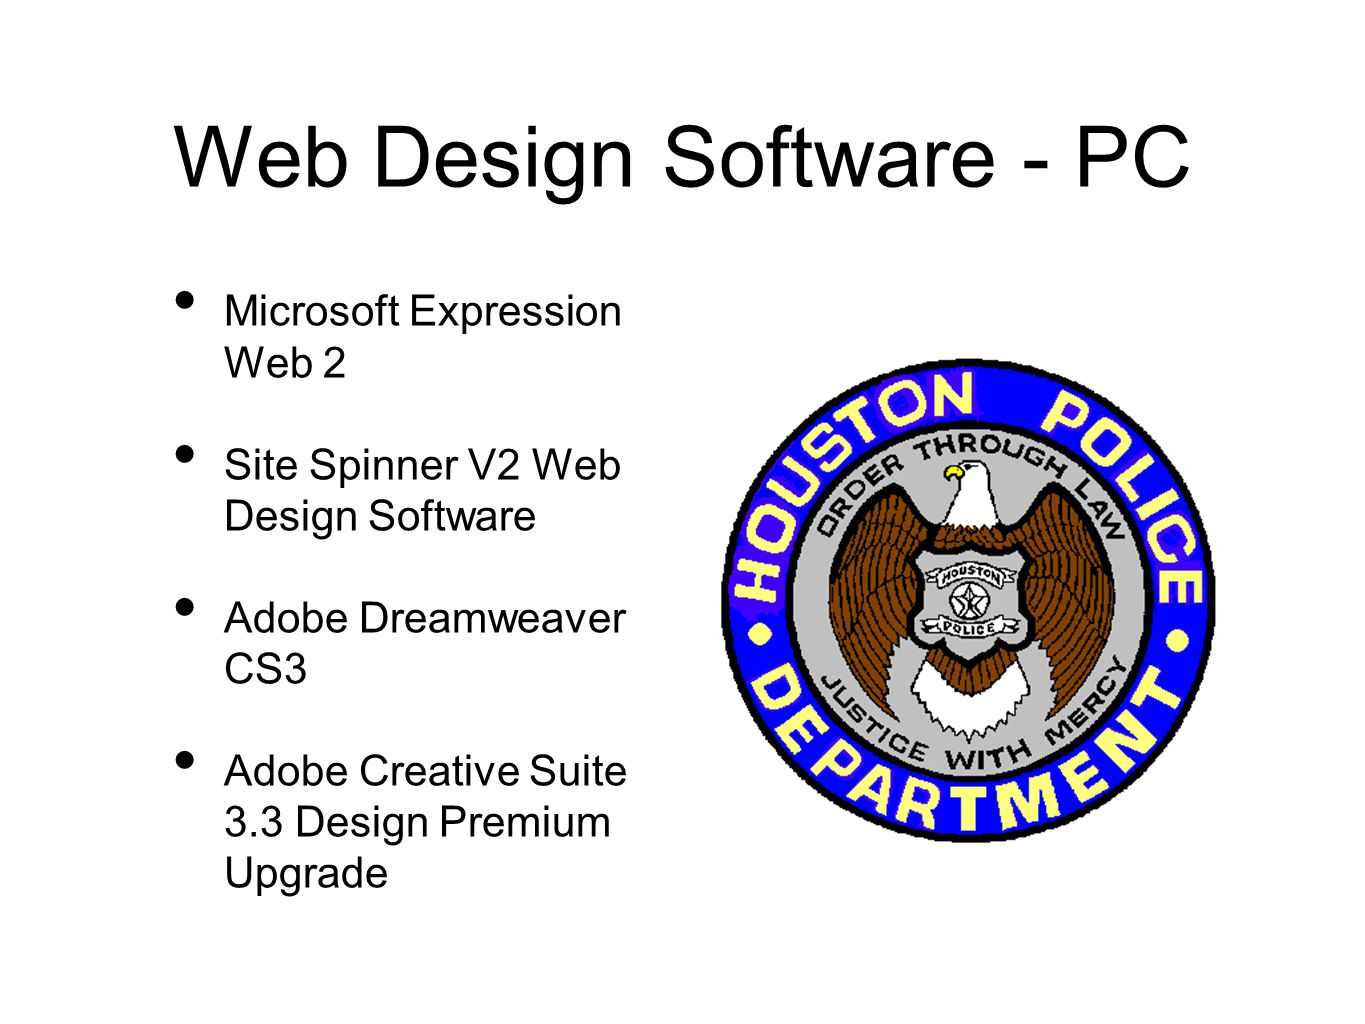 Web Design Software - PC Microsoft Expression Web 2 Site Spinner V2 Web Design Software Adobe Dreamweaver CS3 Adobe Creative Suite 3.3 Design Premium Upgrade